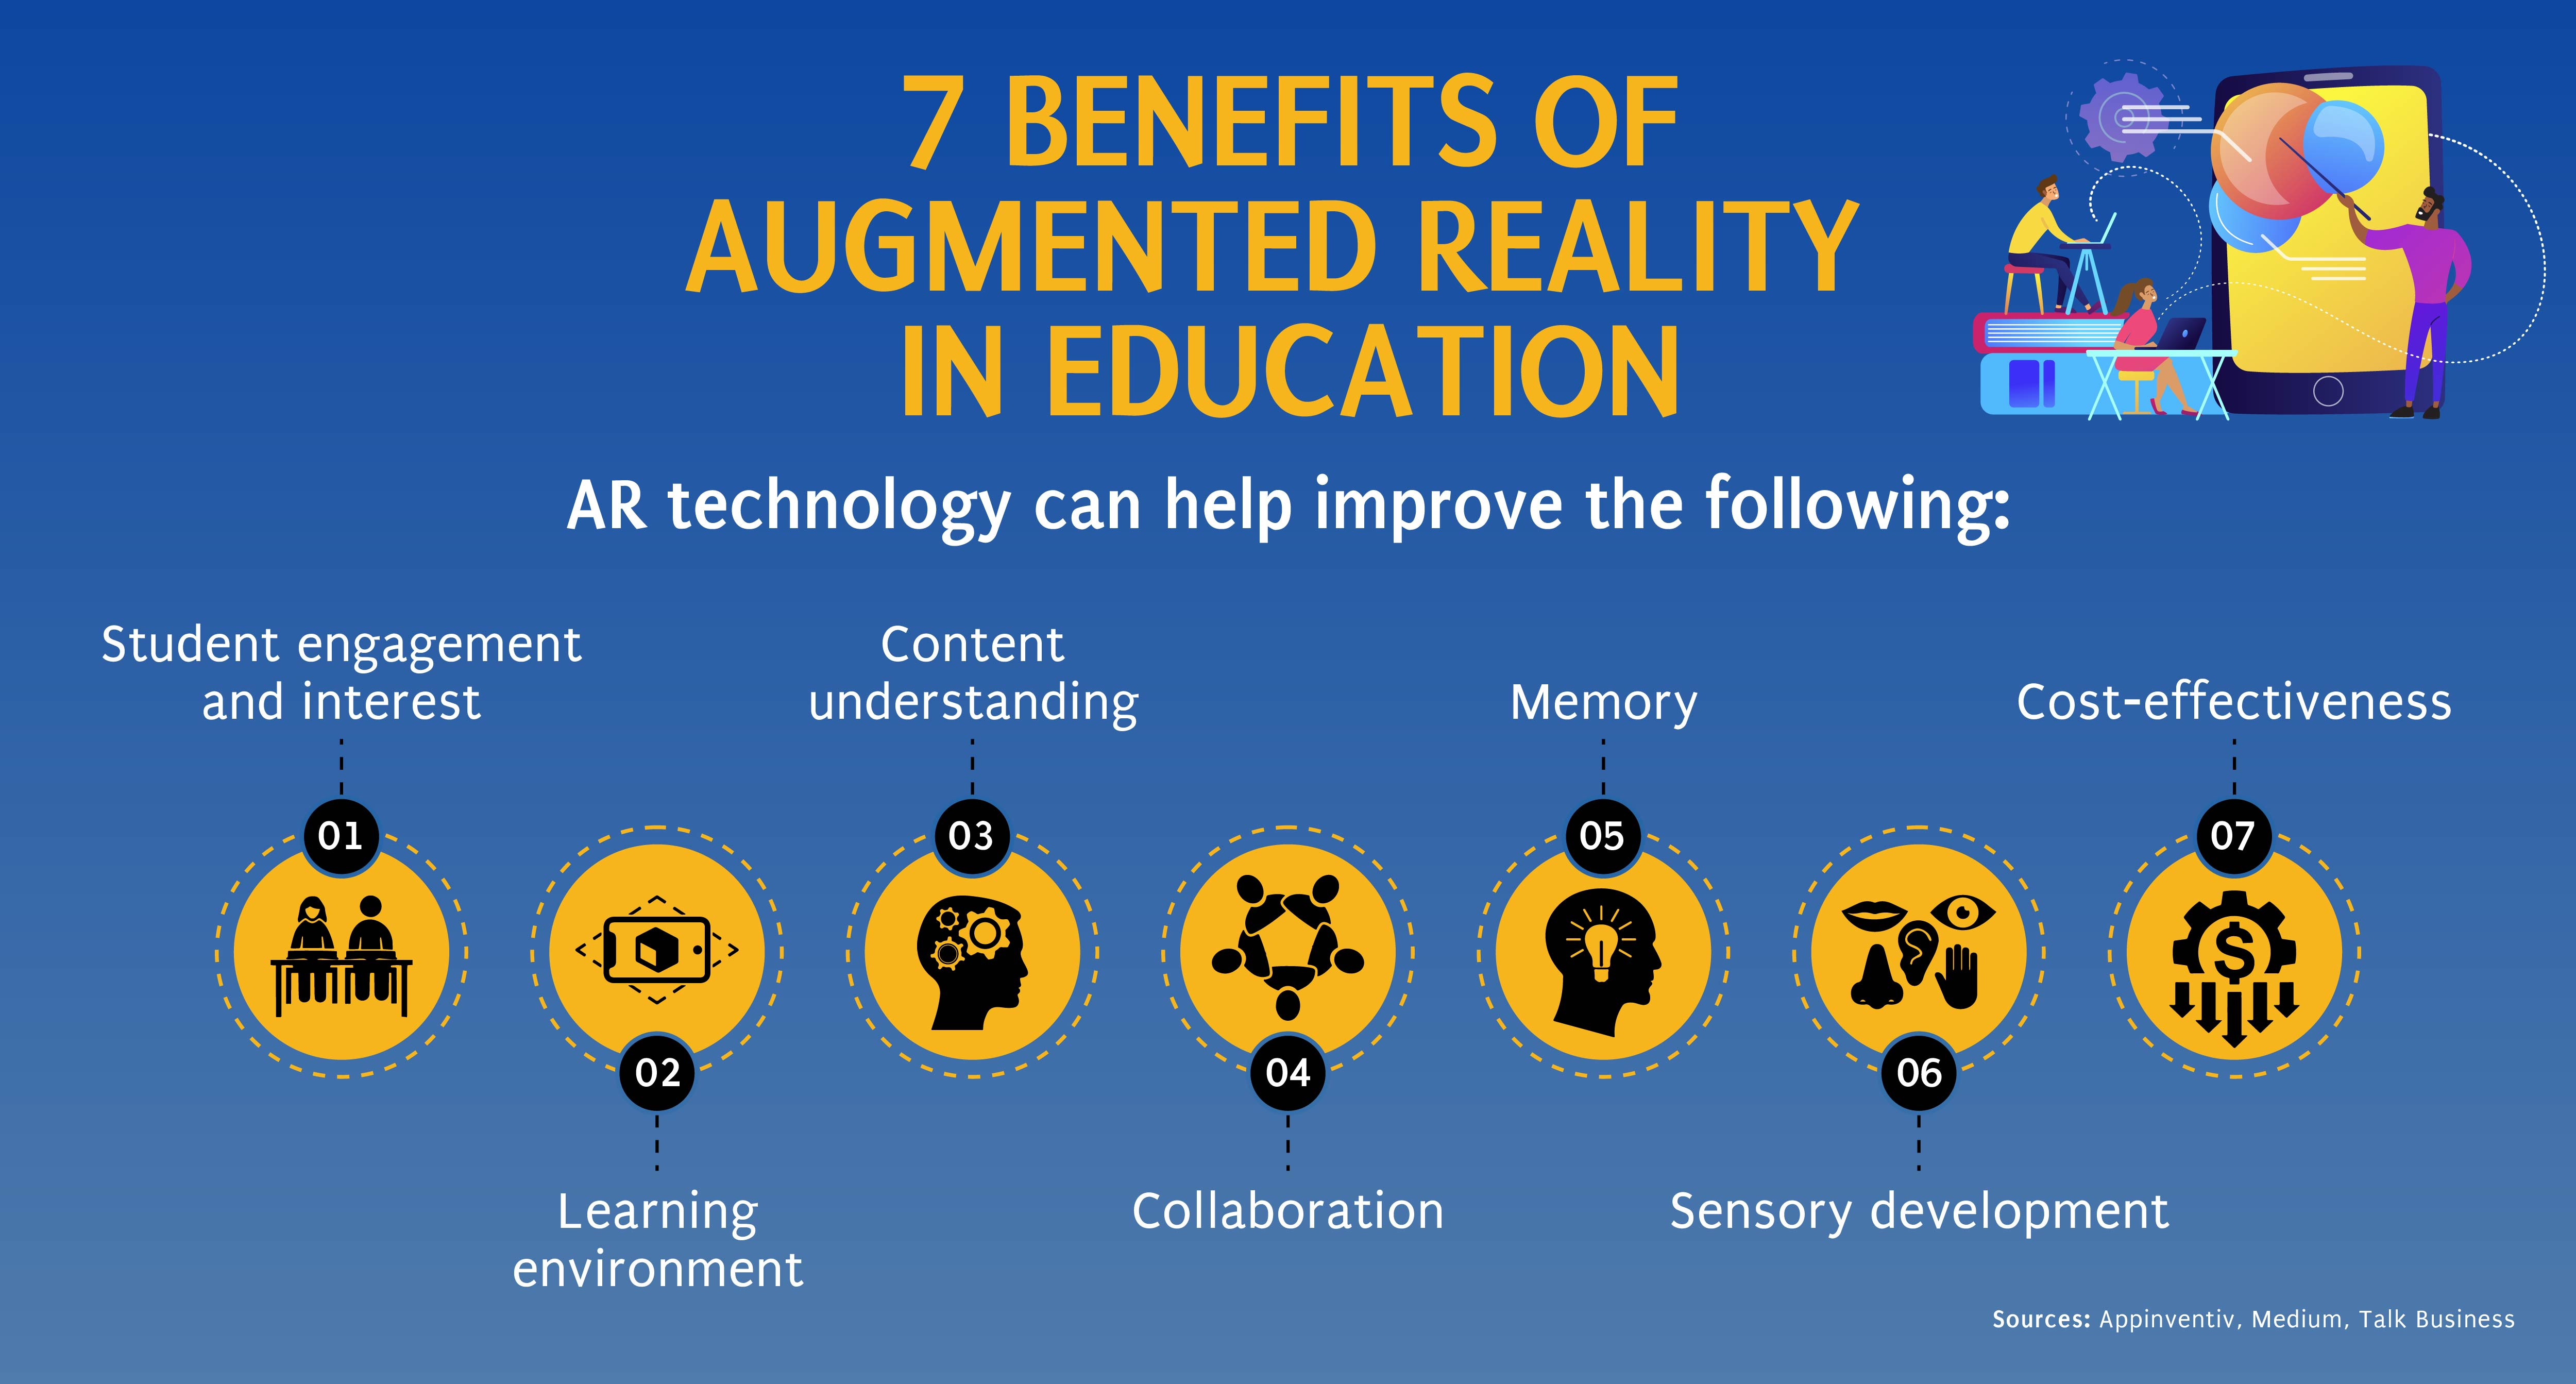 Seven benefits of augmented reality in education.